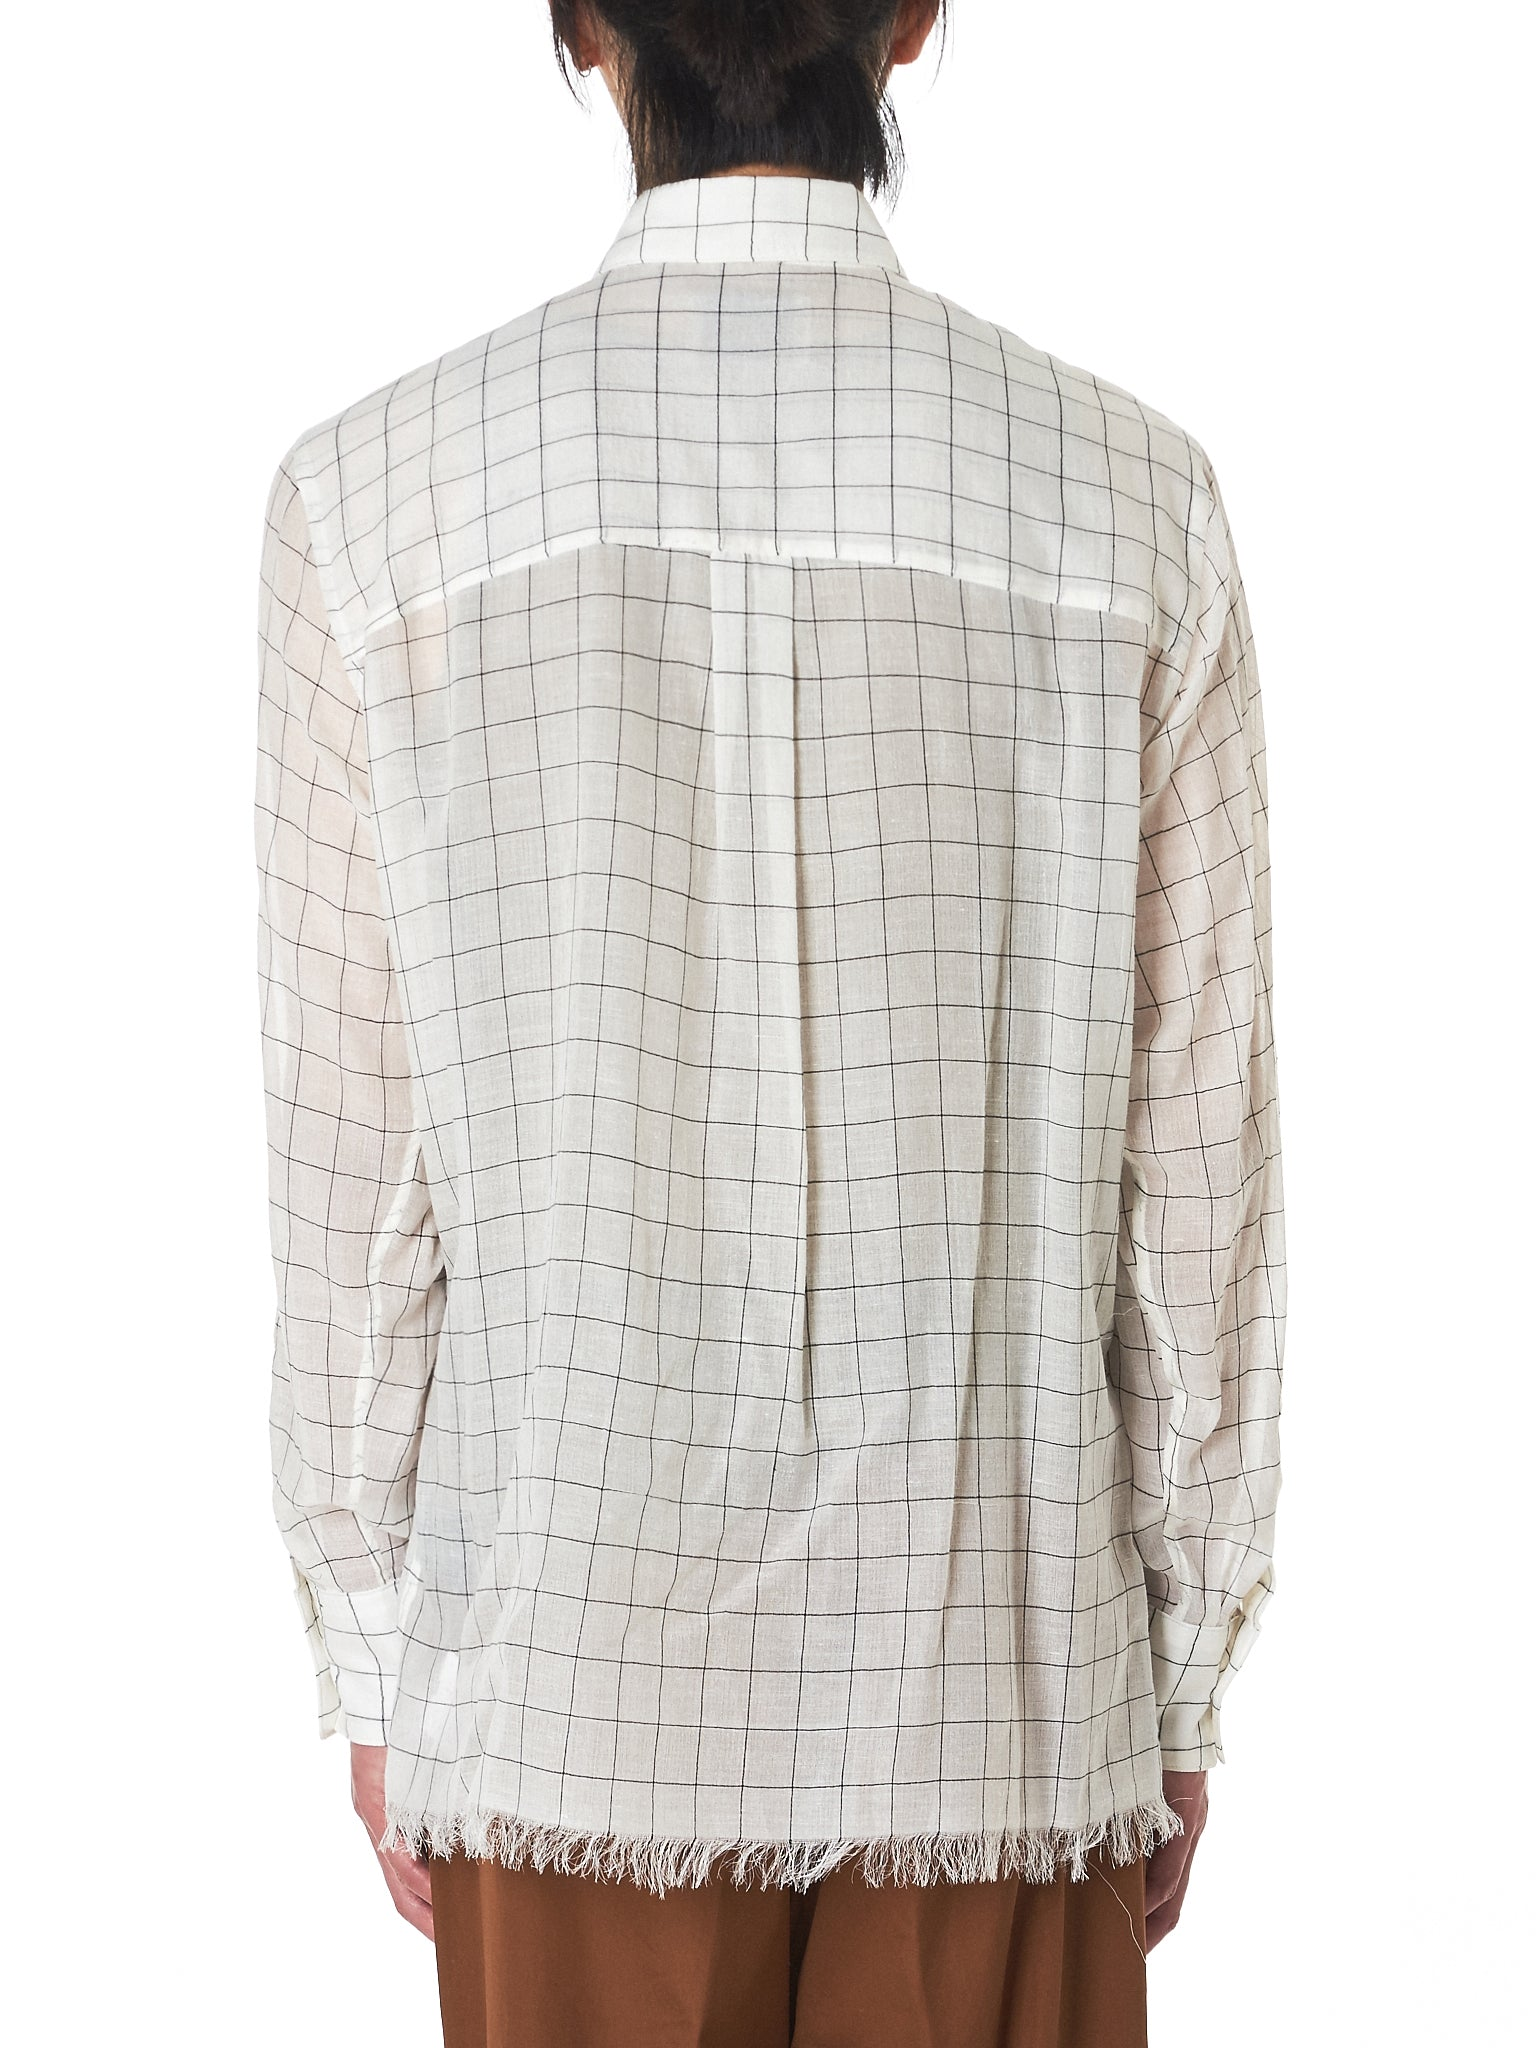 Federico Curradi Shirt - Hlorenzo Back